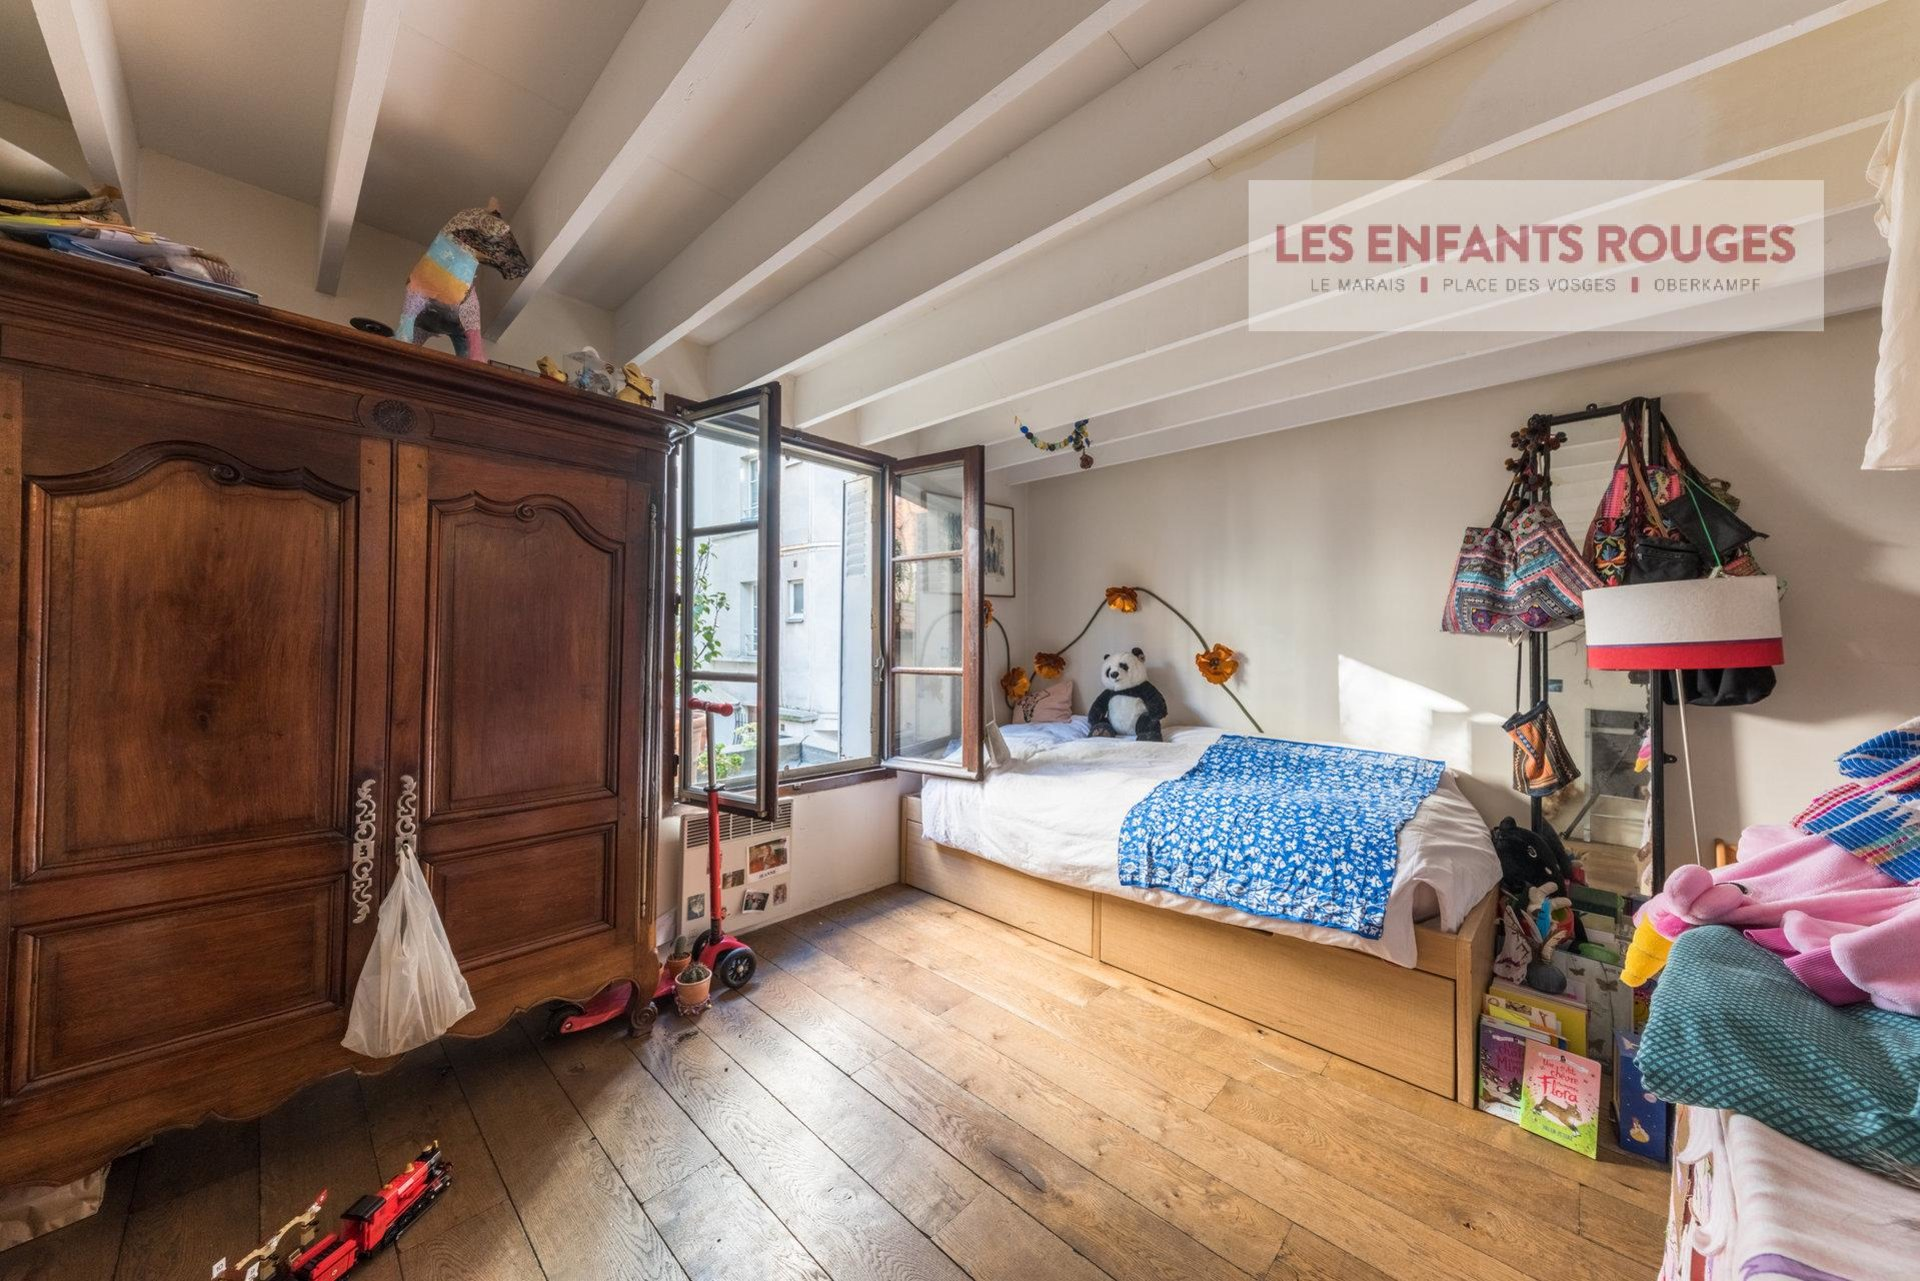 Sale Apartment - Paris 10th (Paris 10ème)